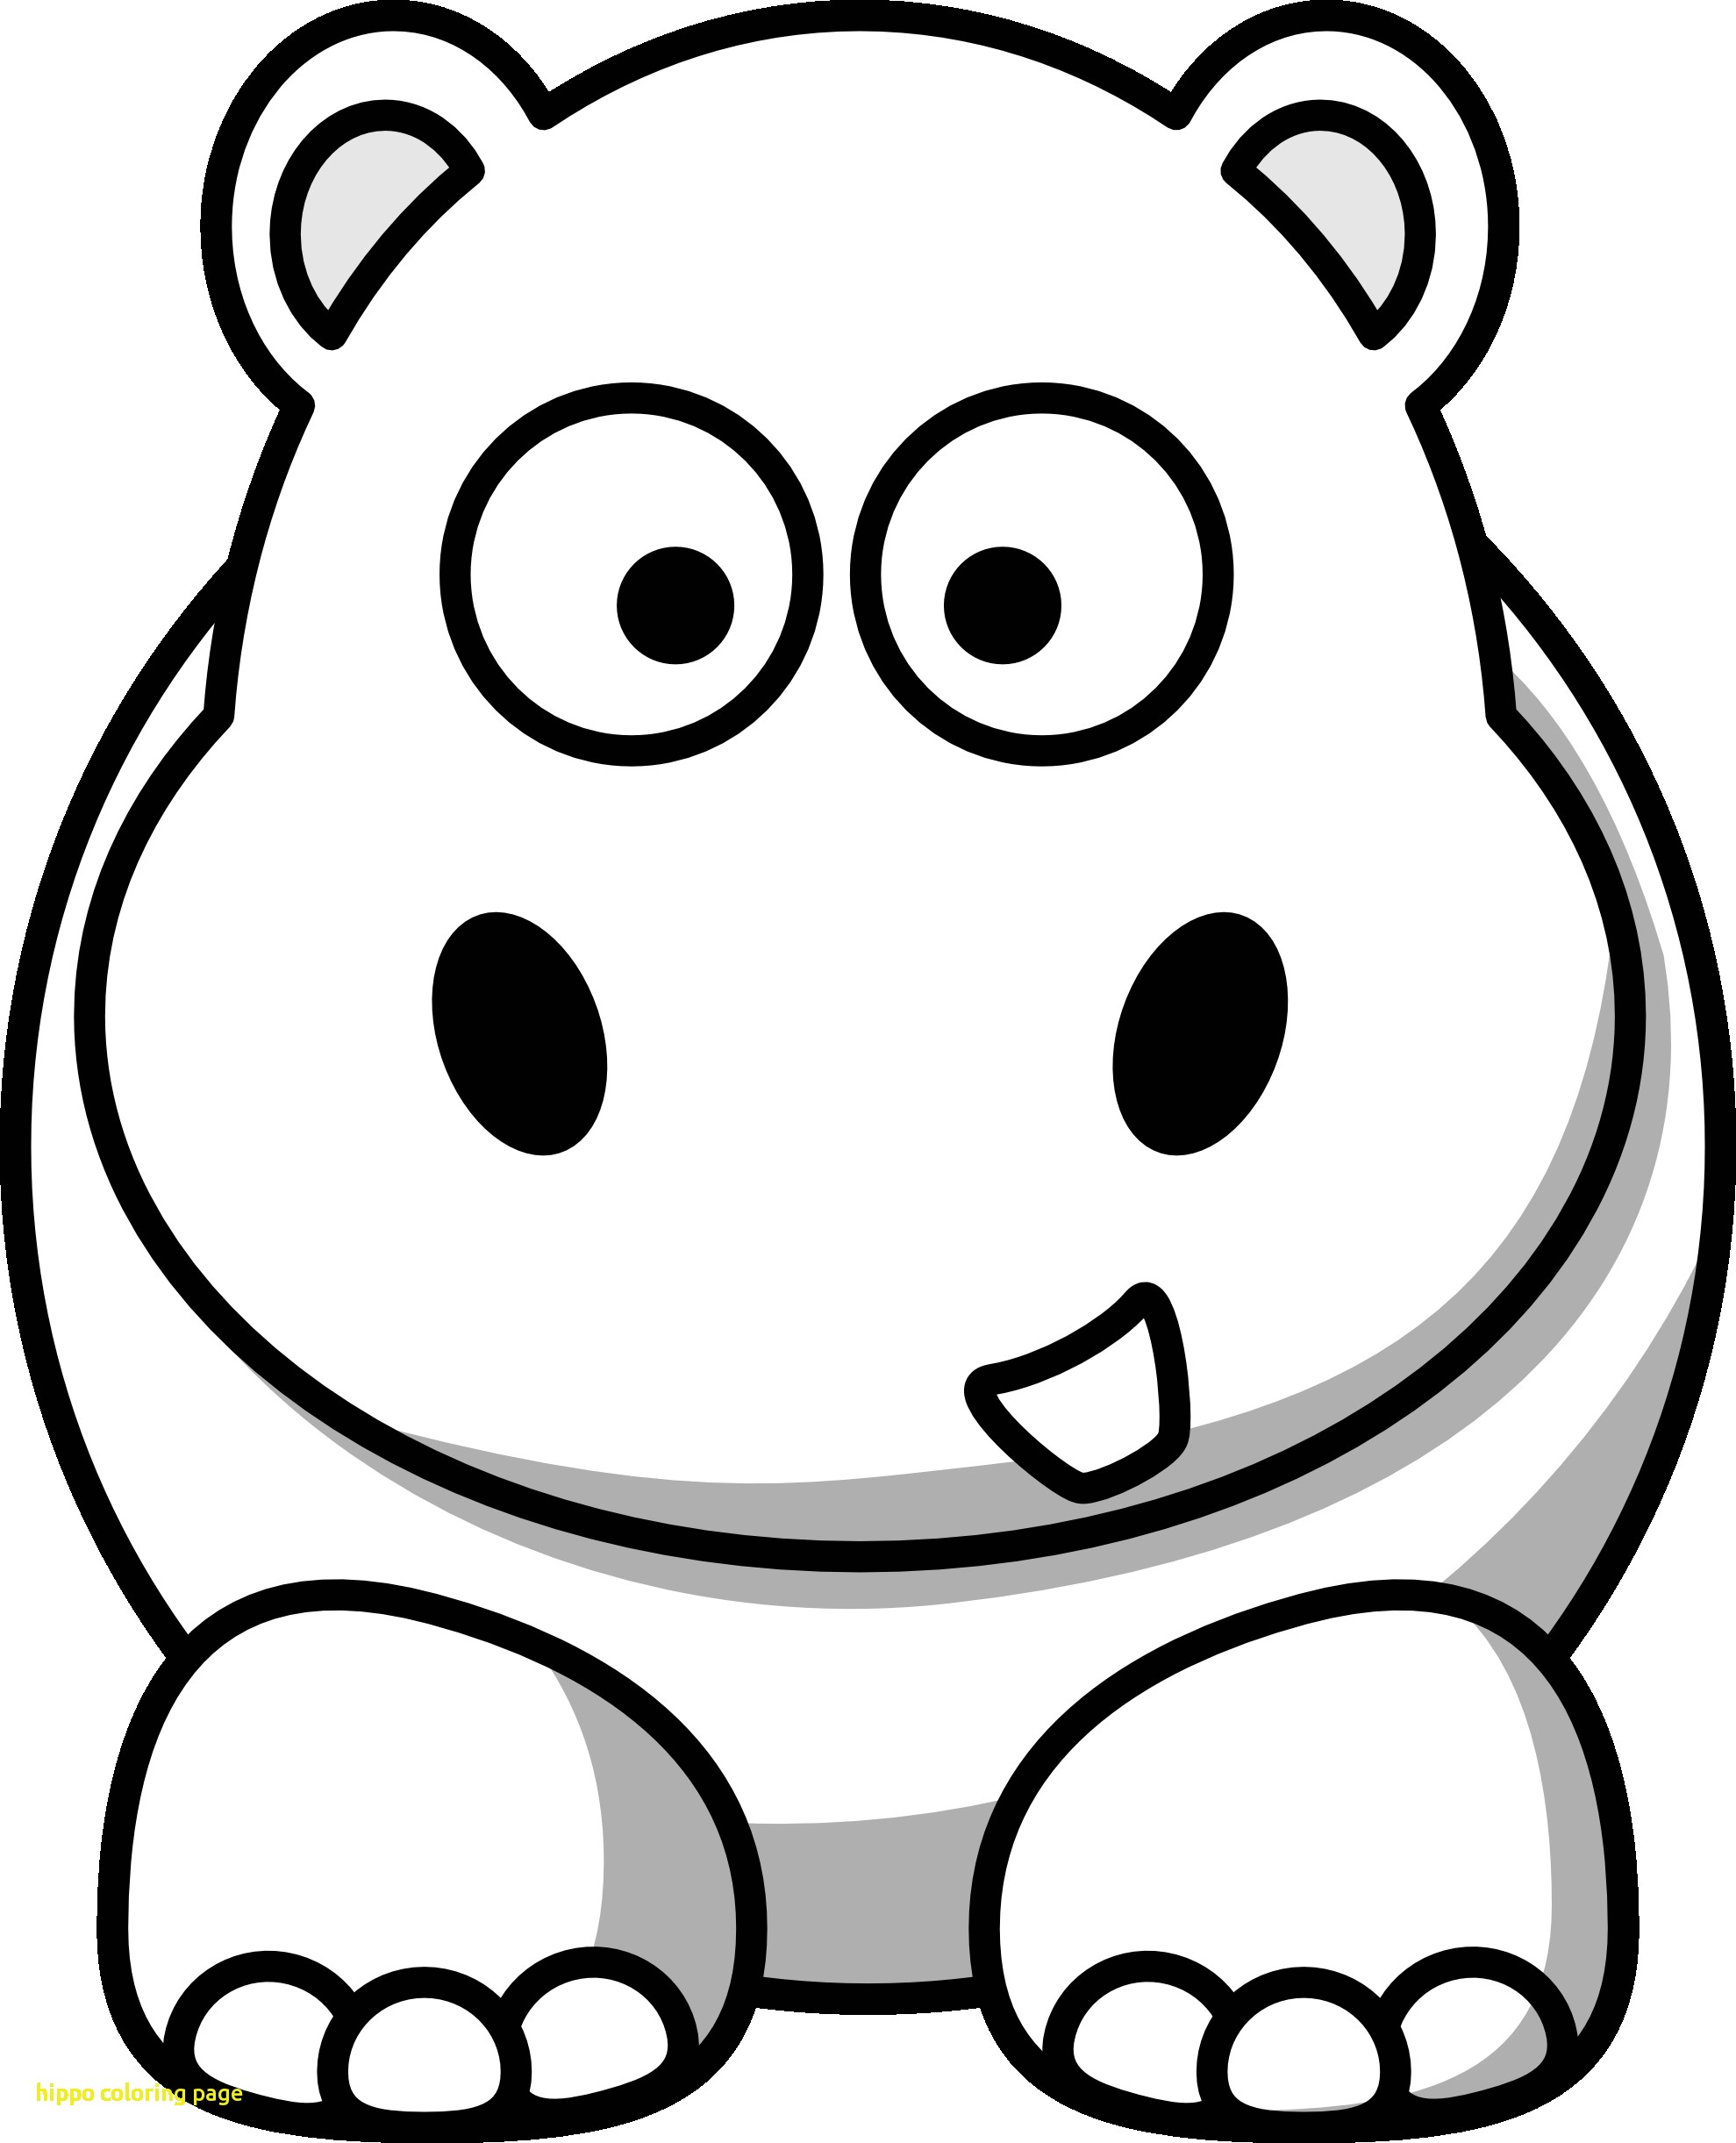 coloring hippo clipart baby hippo coloring coloring pages clipart coloring hippo